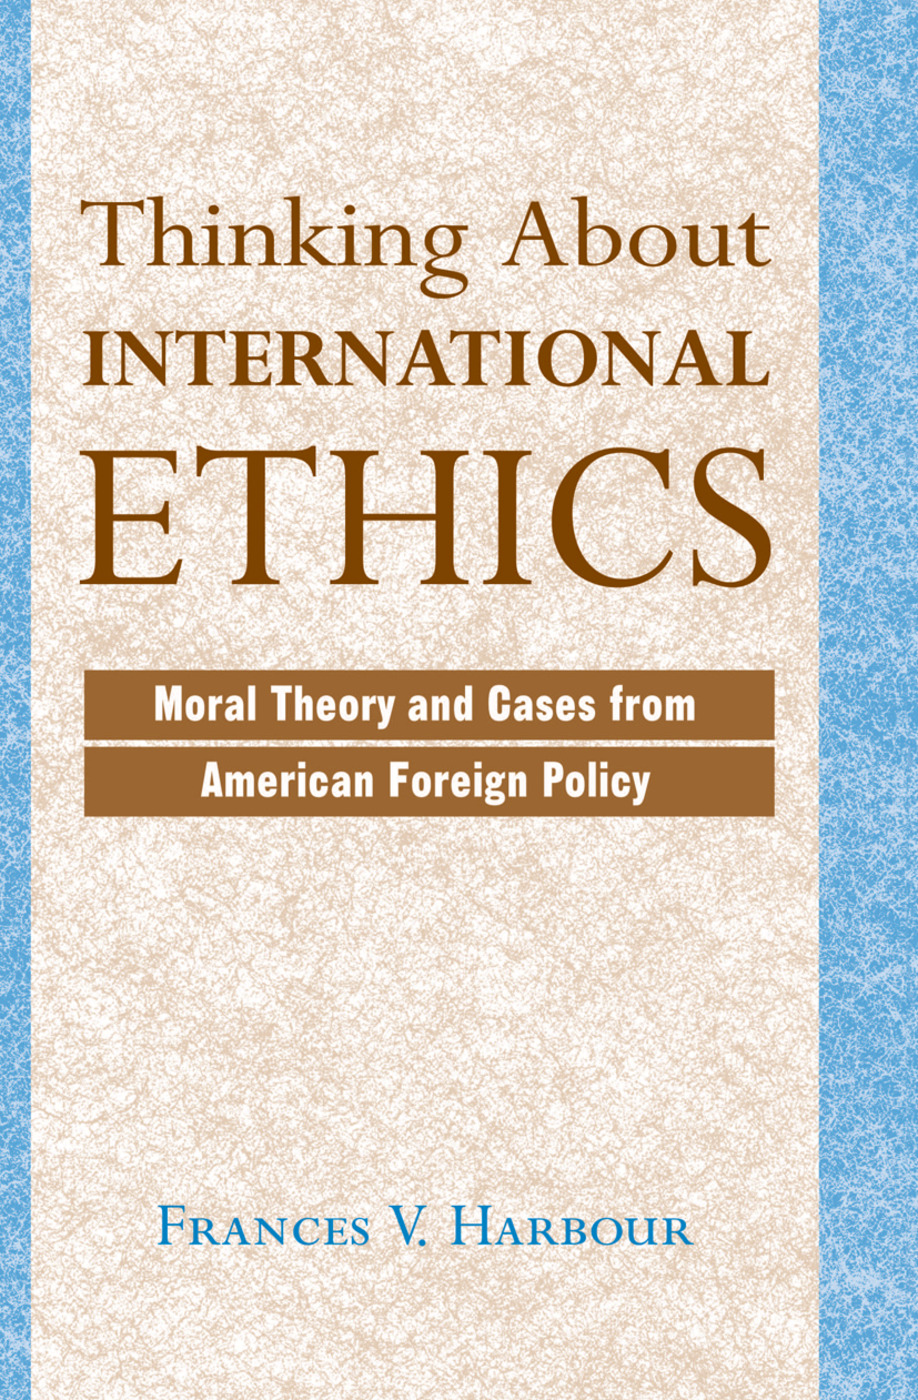 Thinking About International Ethics: Moral Theory And Cases From American Foreign Policy book cover